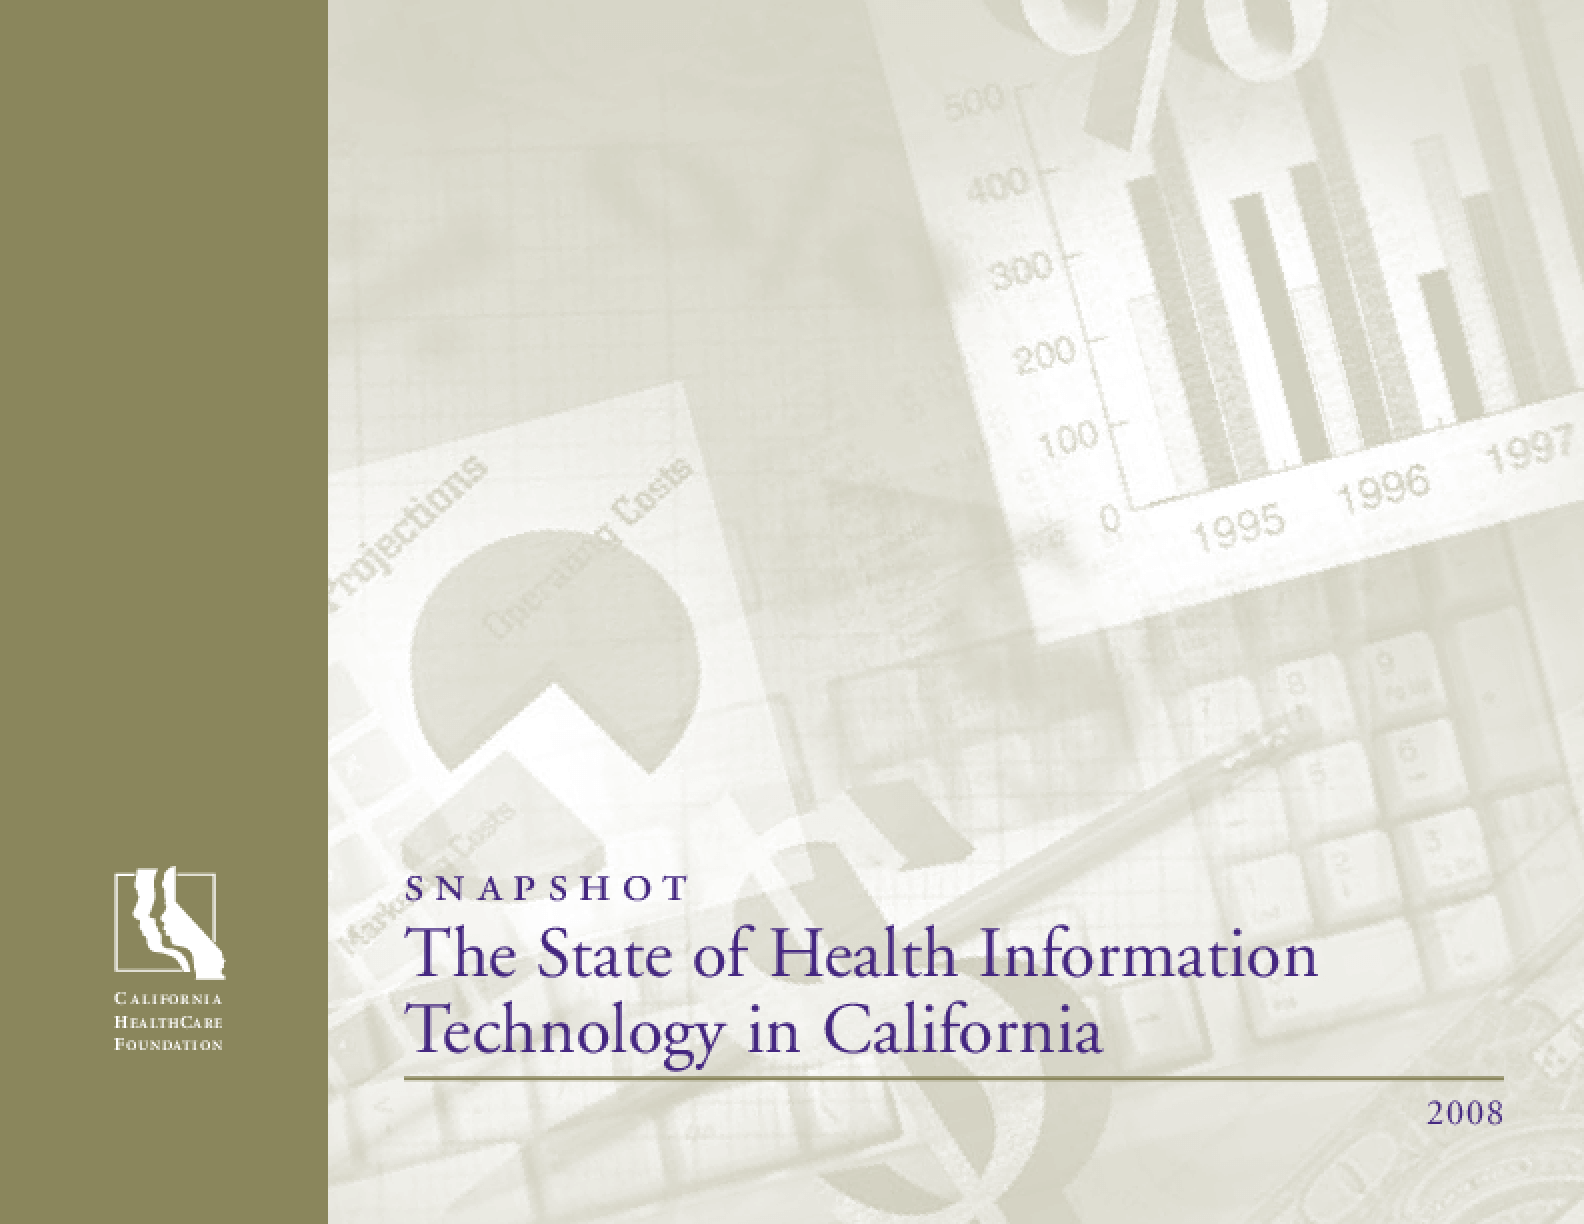 Snapshot: The State of Health Information Technology in California